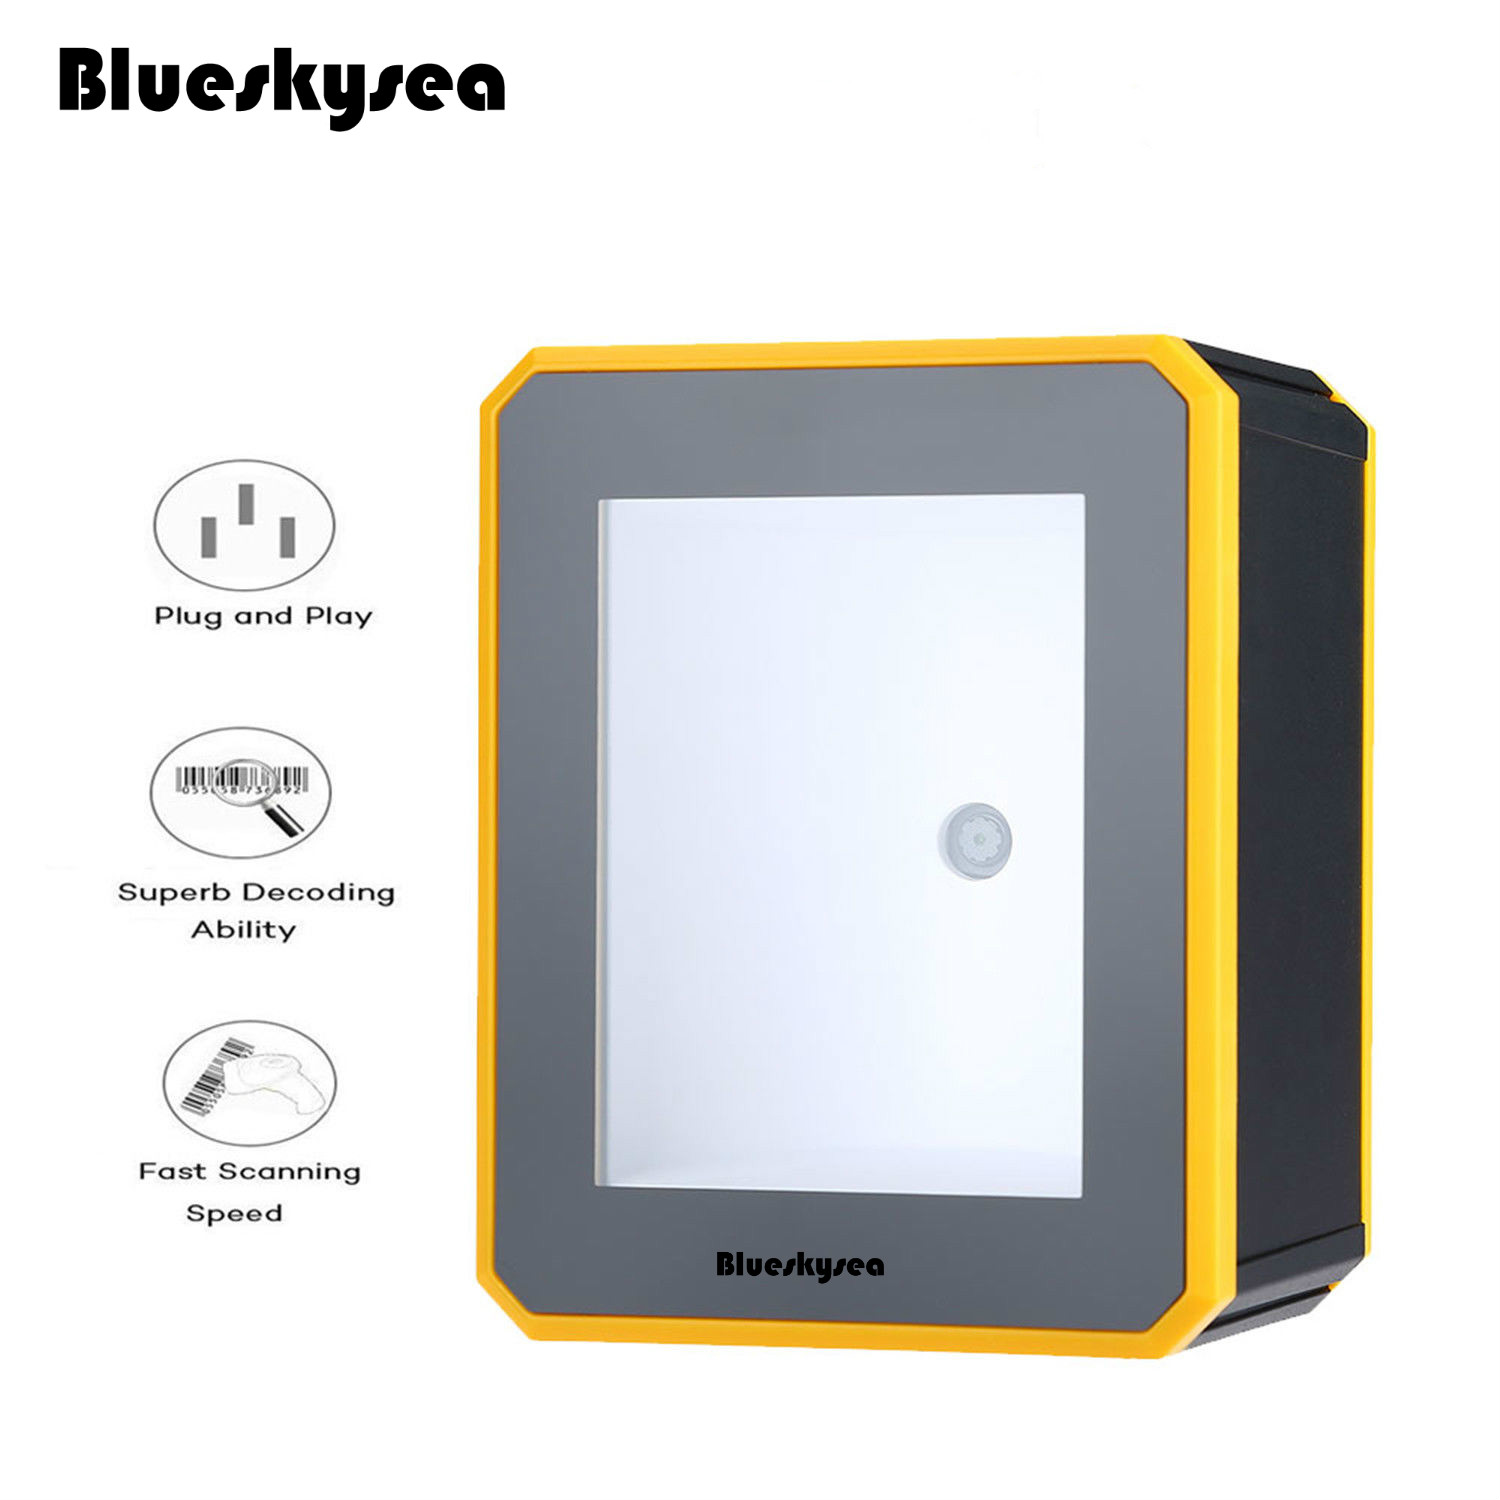 все цены на Blueskysea YK-MP2600 Omni-Directional 2D Bar Code Scanner Platform Desktop USB Barcode Scanner QR Code Reader онлайн